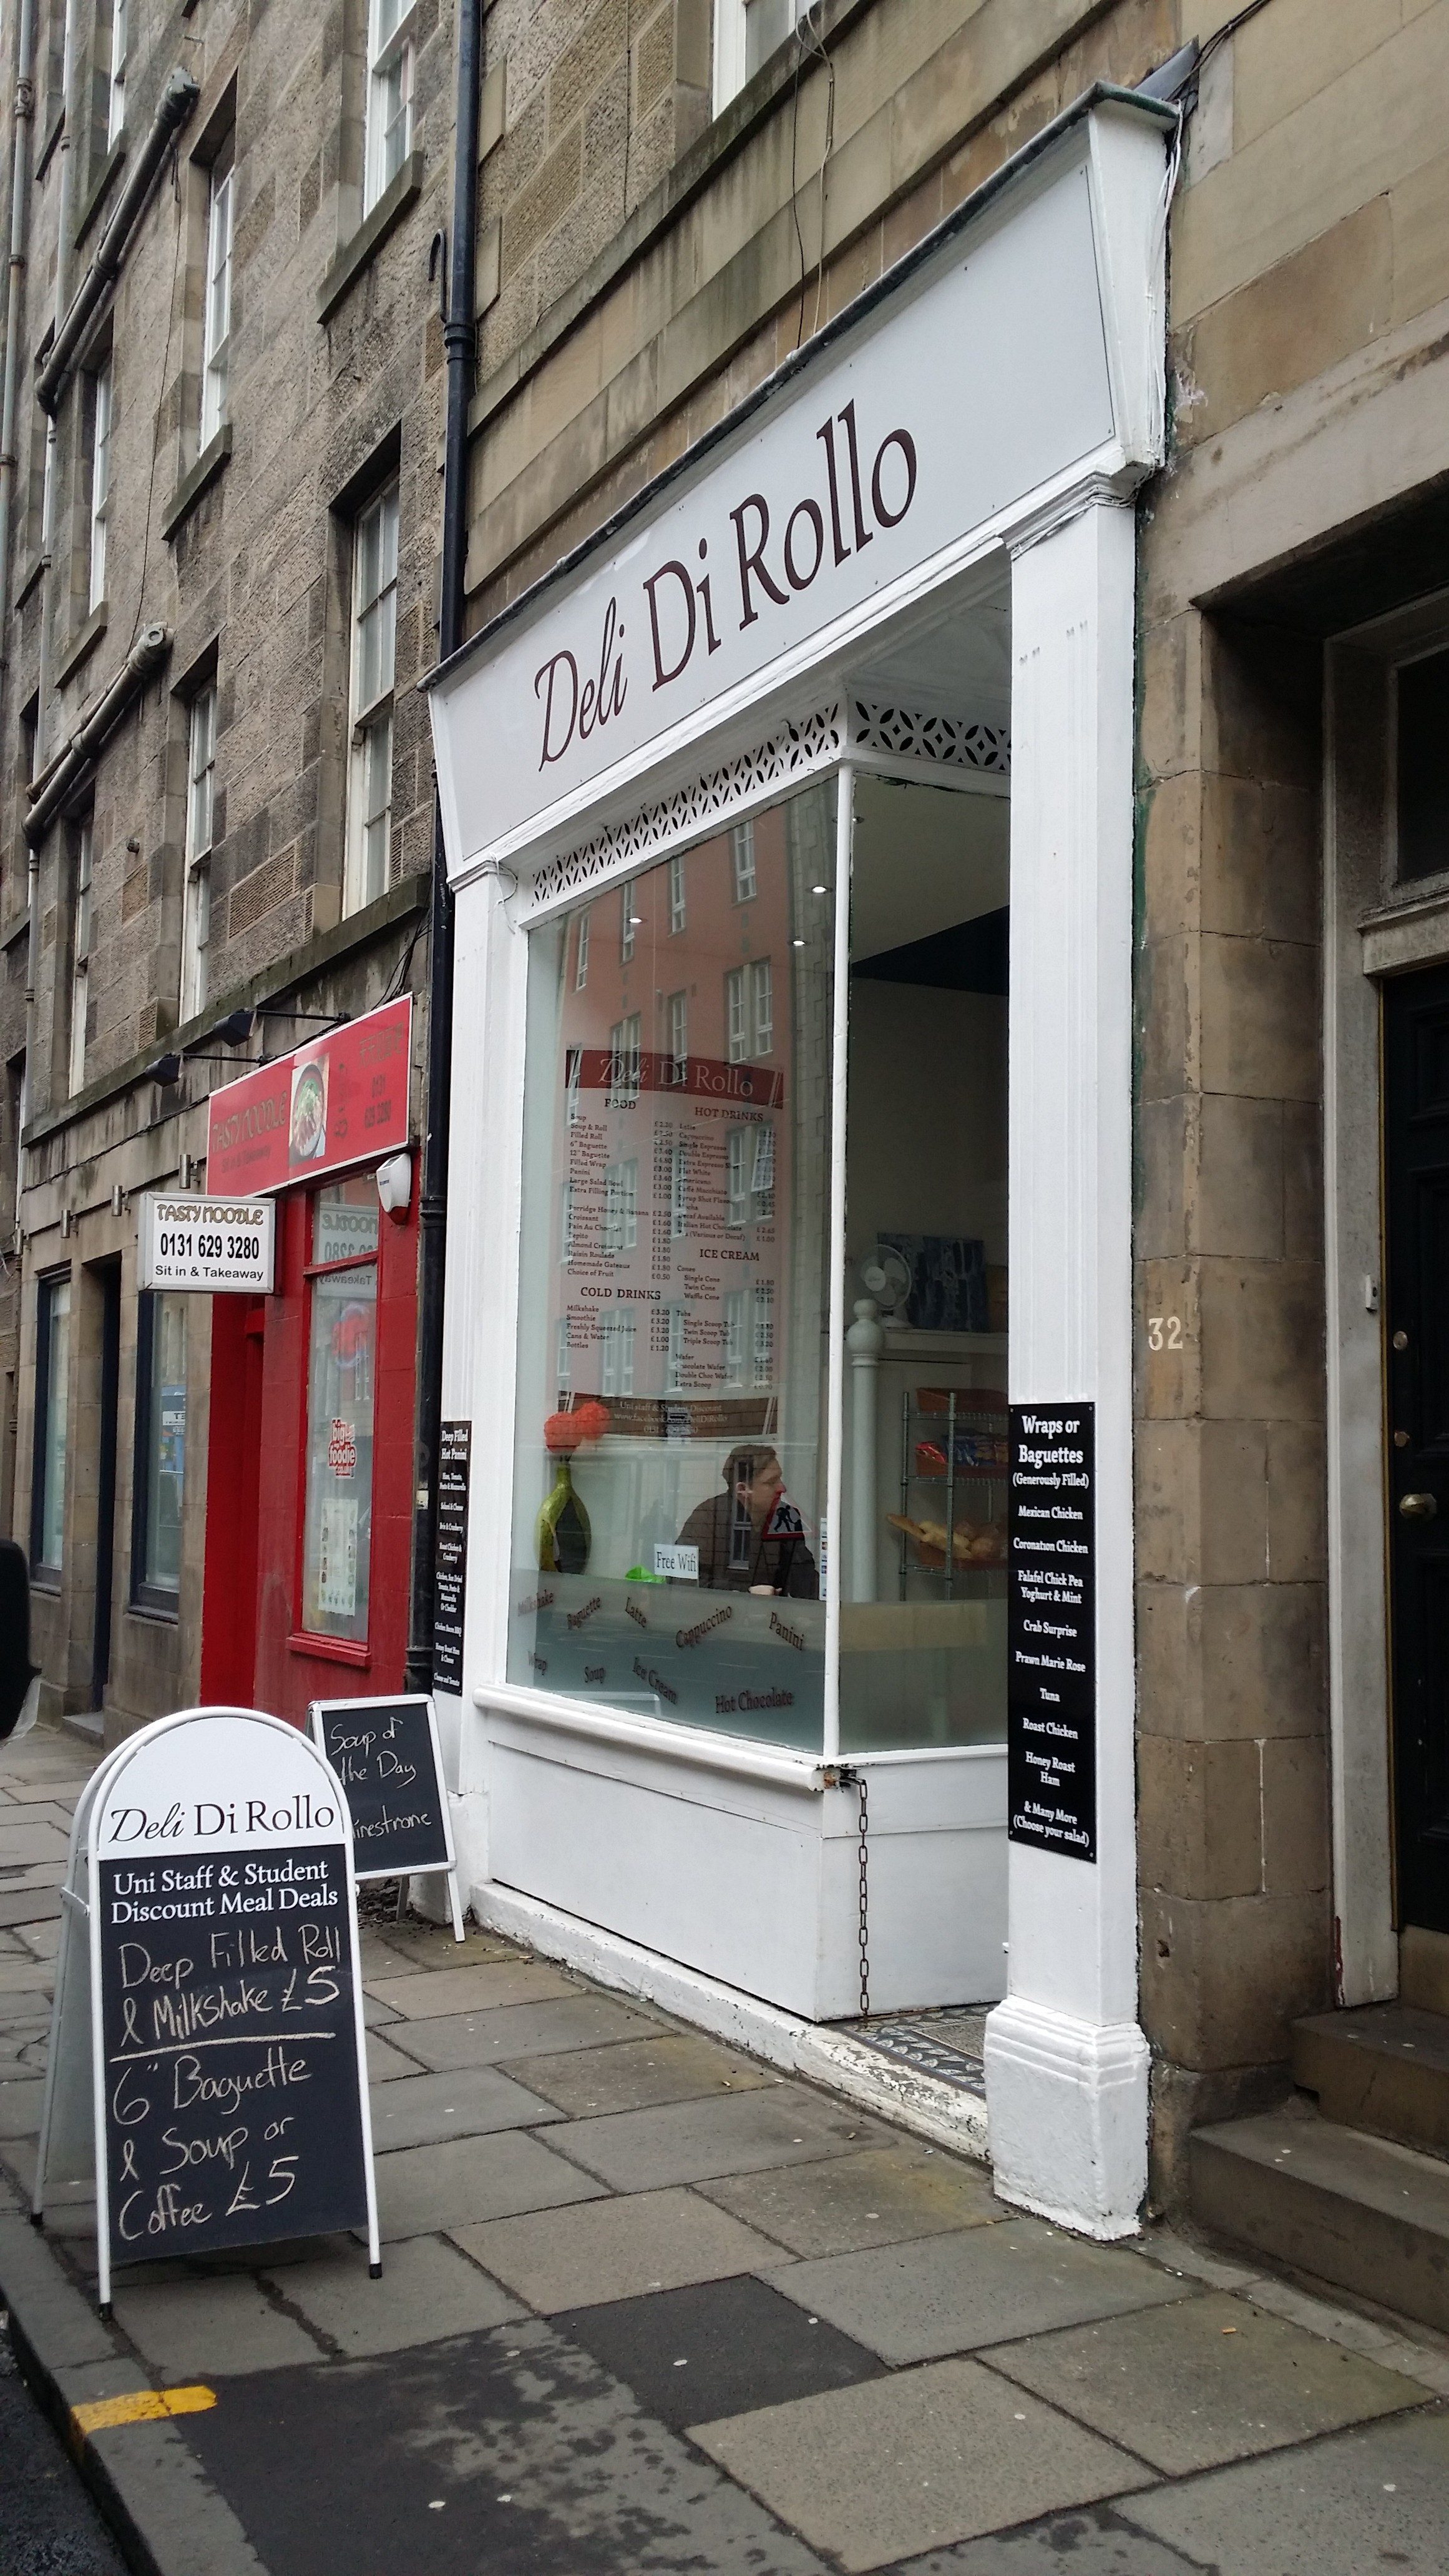 Deli Di Rollo – SADLY NOW CLOSED | Welcome to Lunchquest